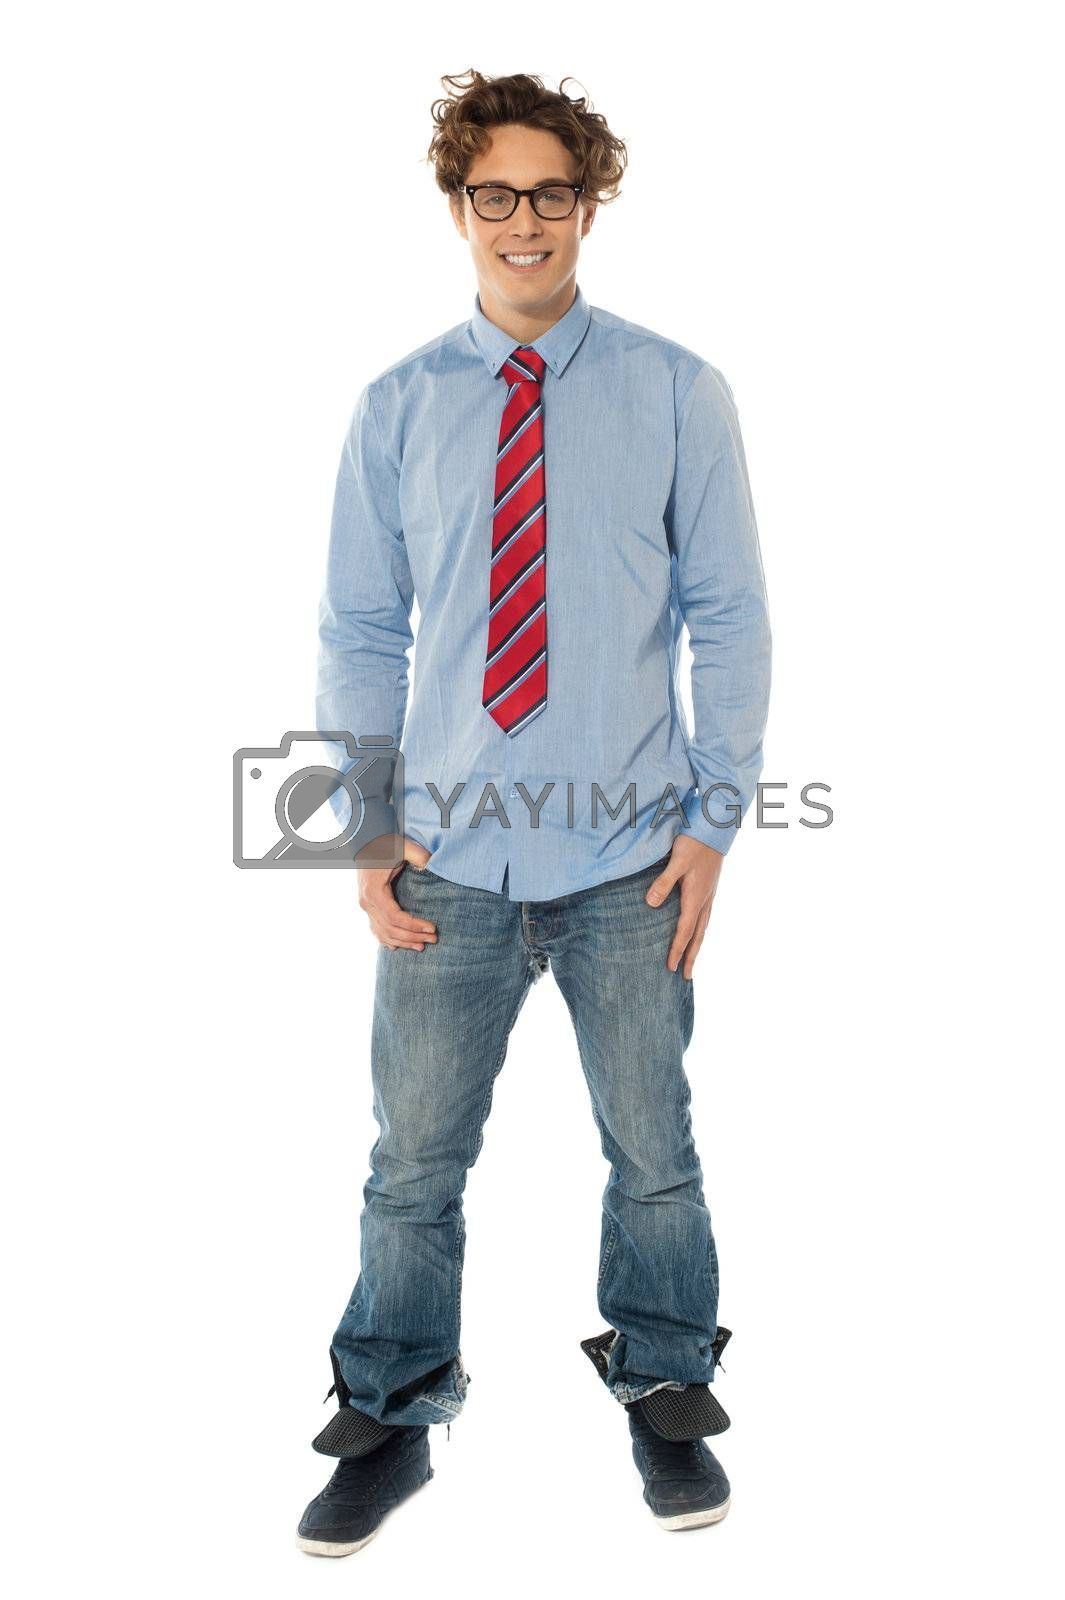 Handsome man standing casually with hands in pocket